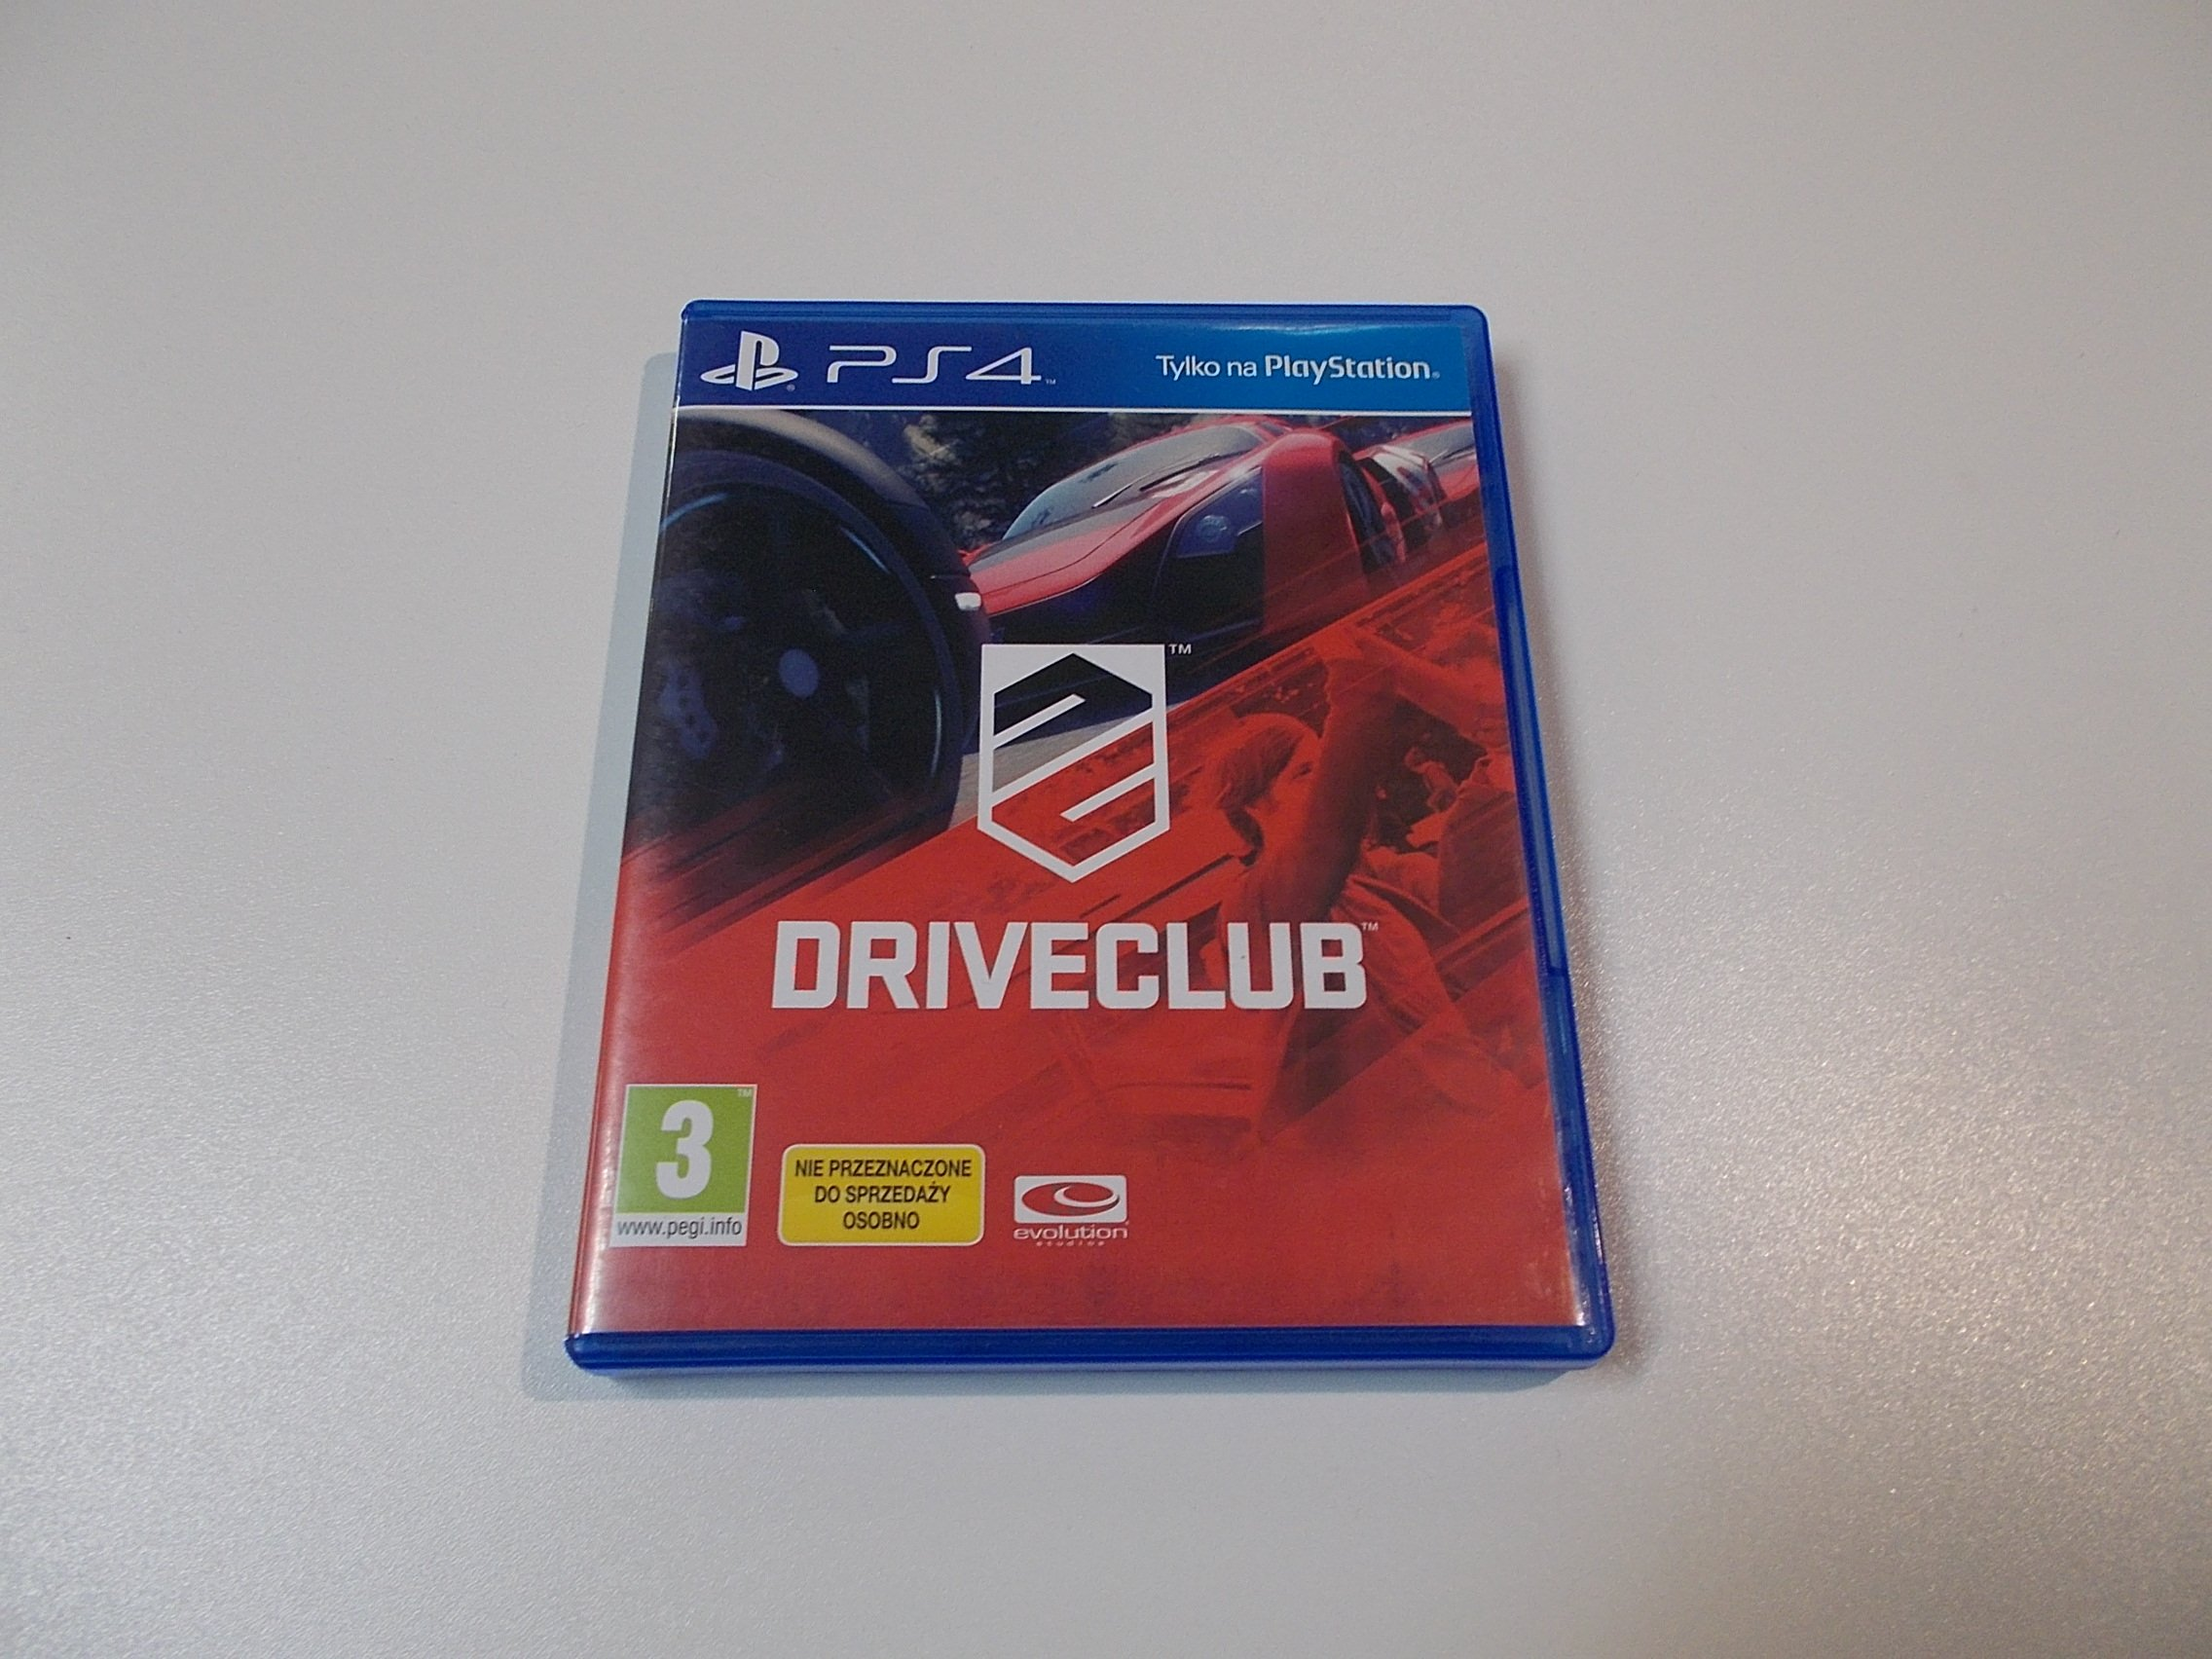 Driveclub - GRA Ps4 - Sklep